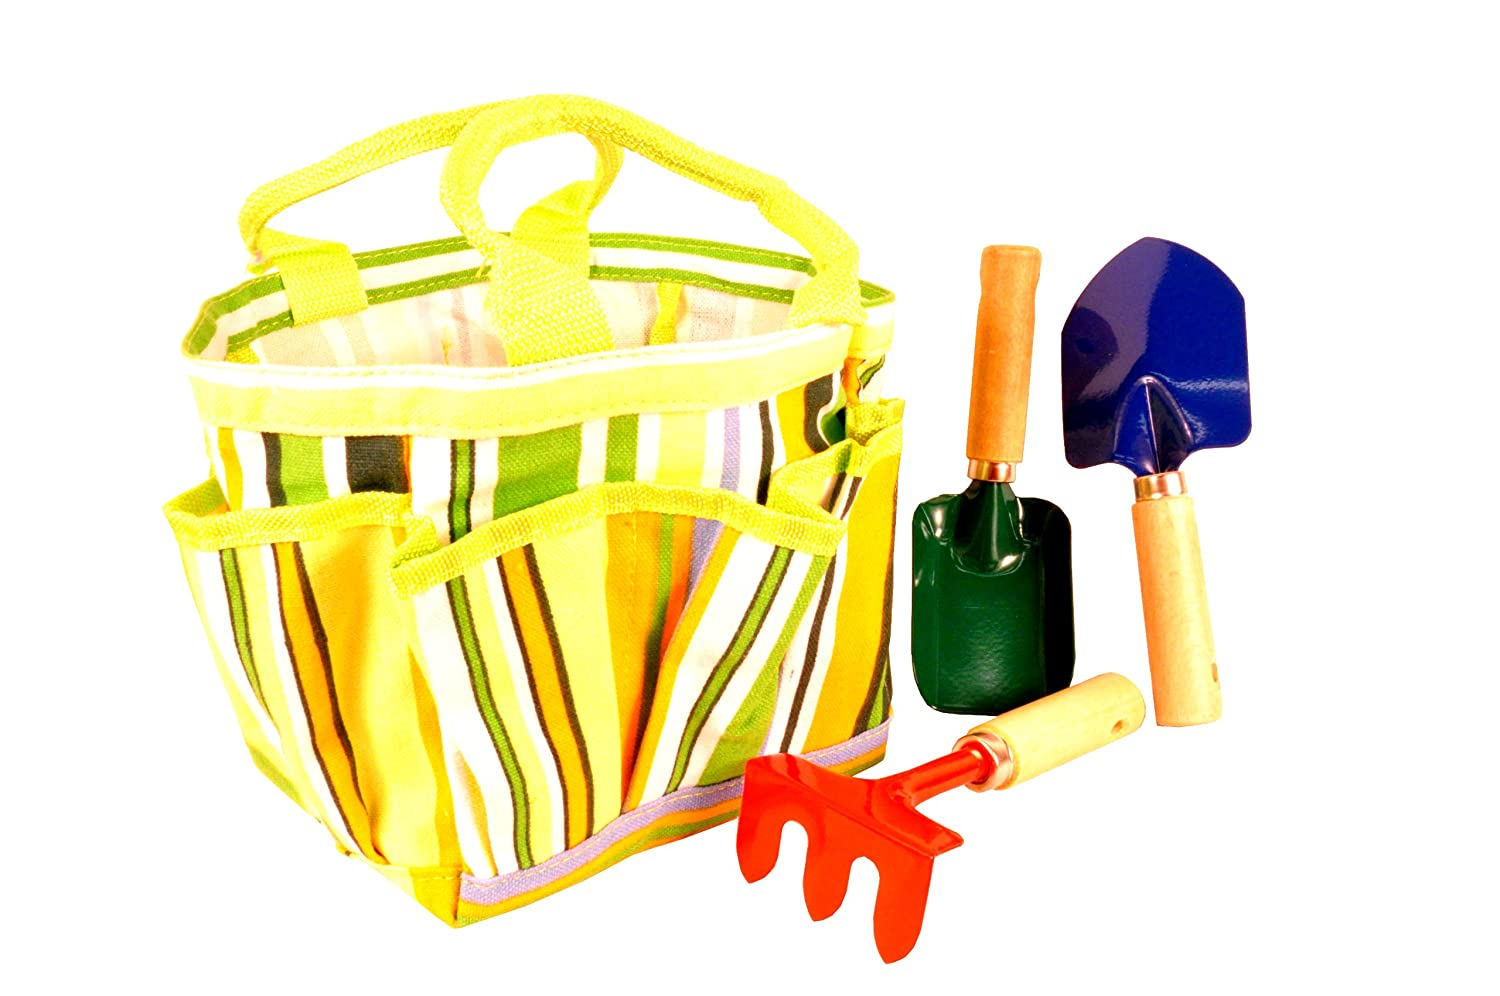 Kids need their own garden tools - Perfect set for little hands - Gardening With Kids {Weekend Links} from HowToHomeschoolMyChild.com